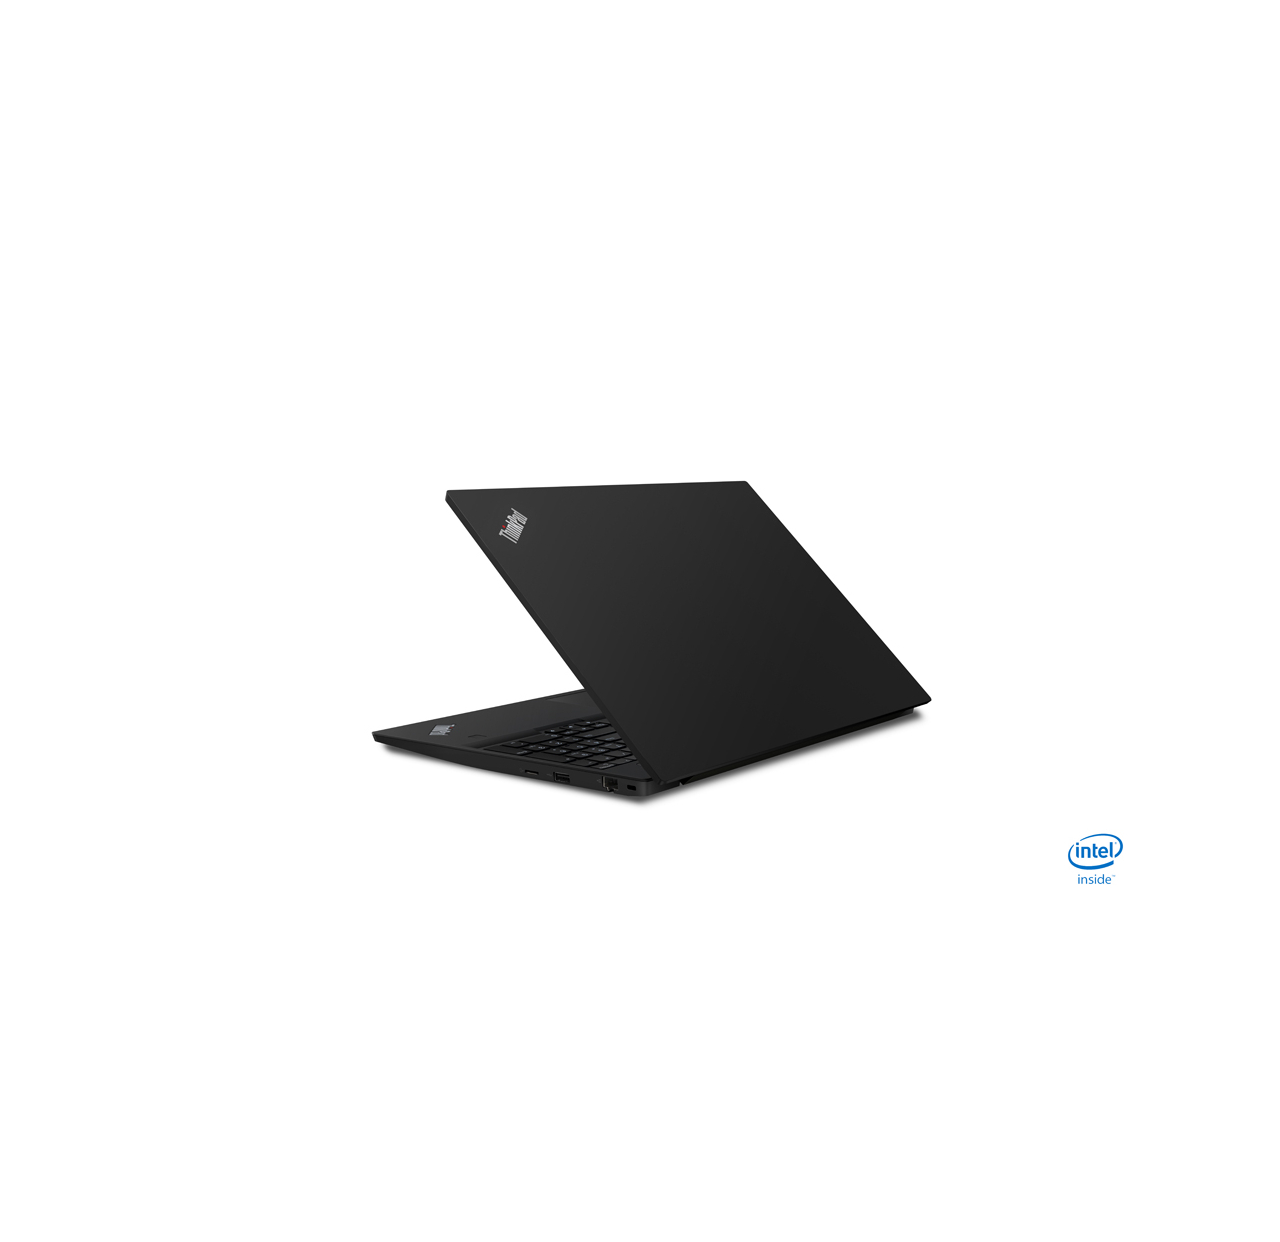 Laptop Lenovo ThinkPad E590 15, 20NB0050PB